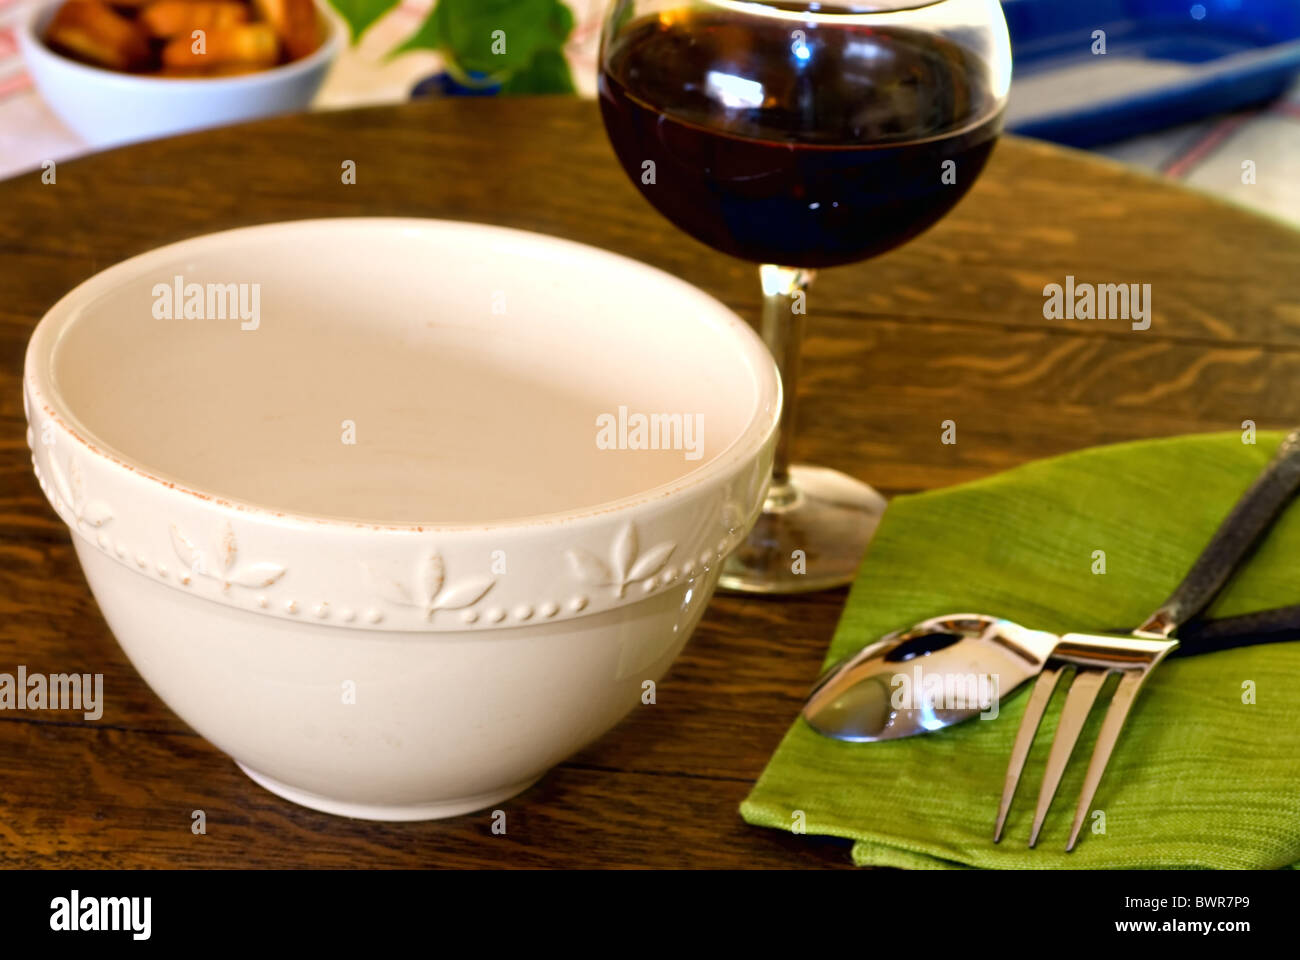 Empty white bowl on table with place setting and red wine Stock Photo